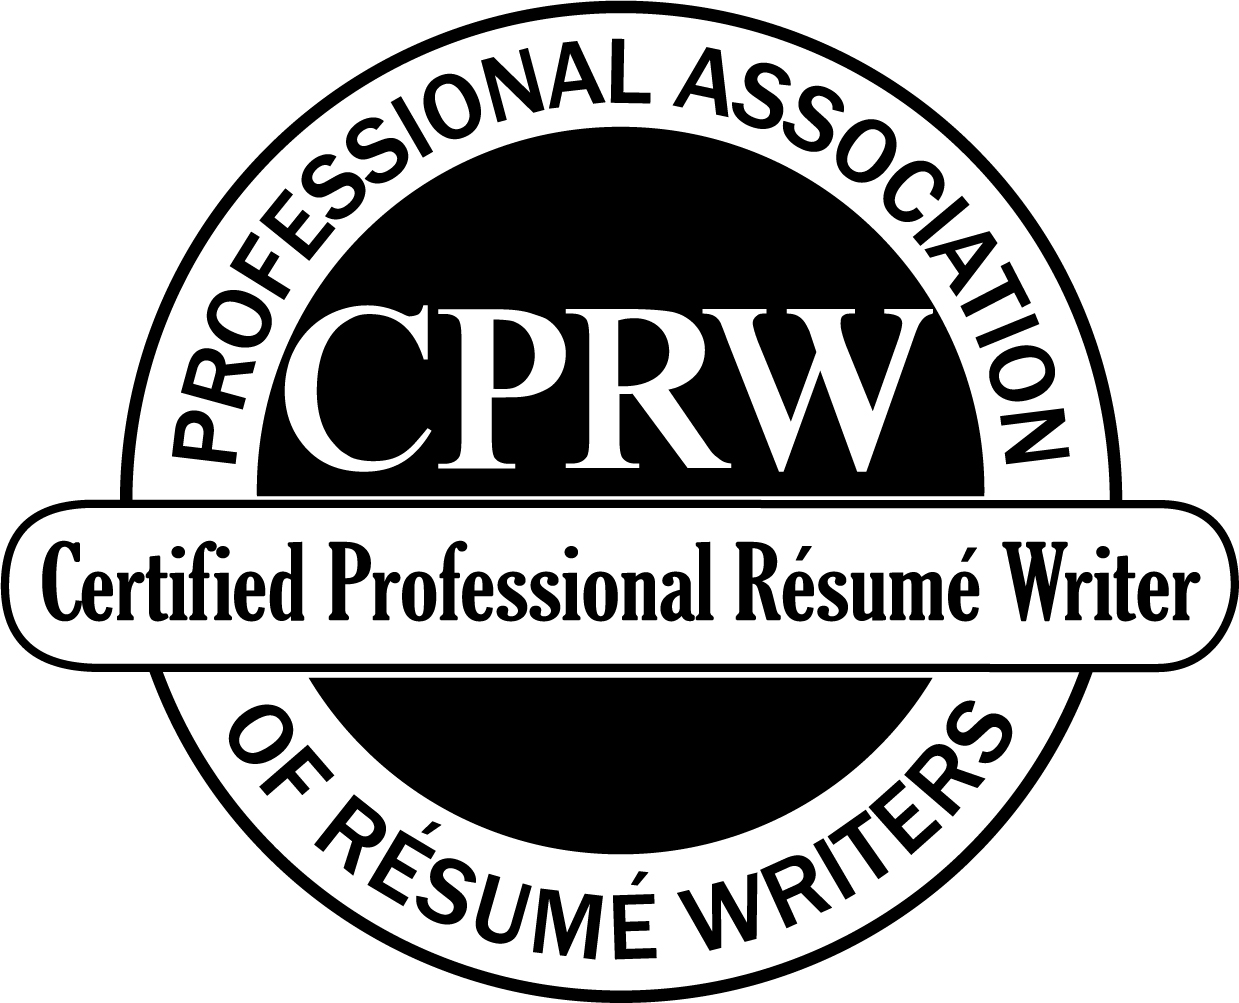 résumé writing services by julie blue professional association of resume writers cprw Resume Professional Association Of Resume Writers